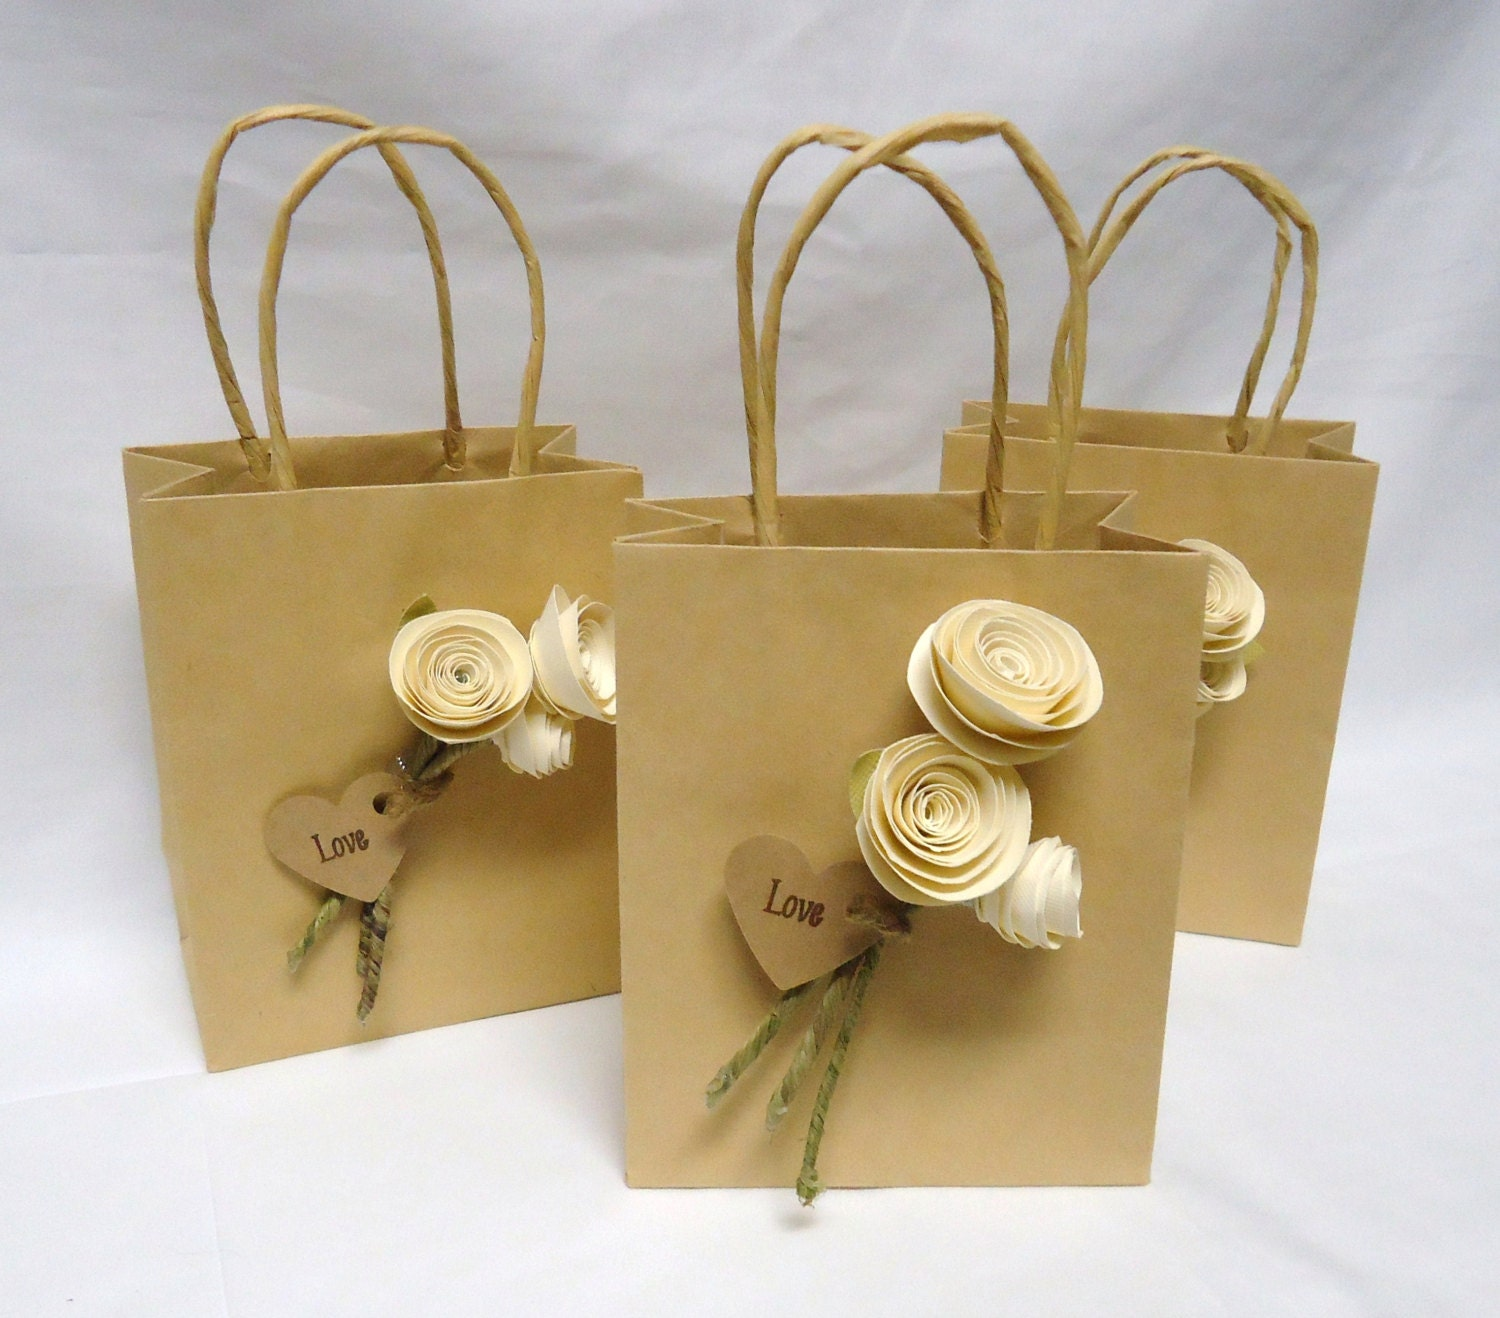 Ideas For Bridal Gift Bags : Wedding favor bags. wedding gift bags. gift bags. Paper rose wedding ...